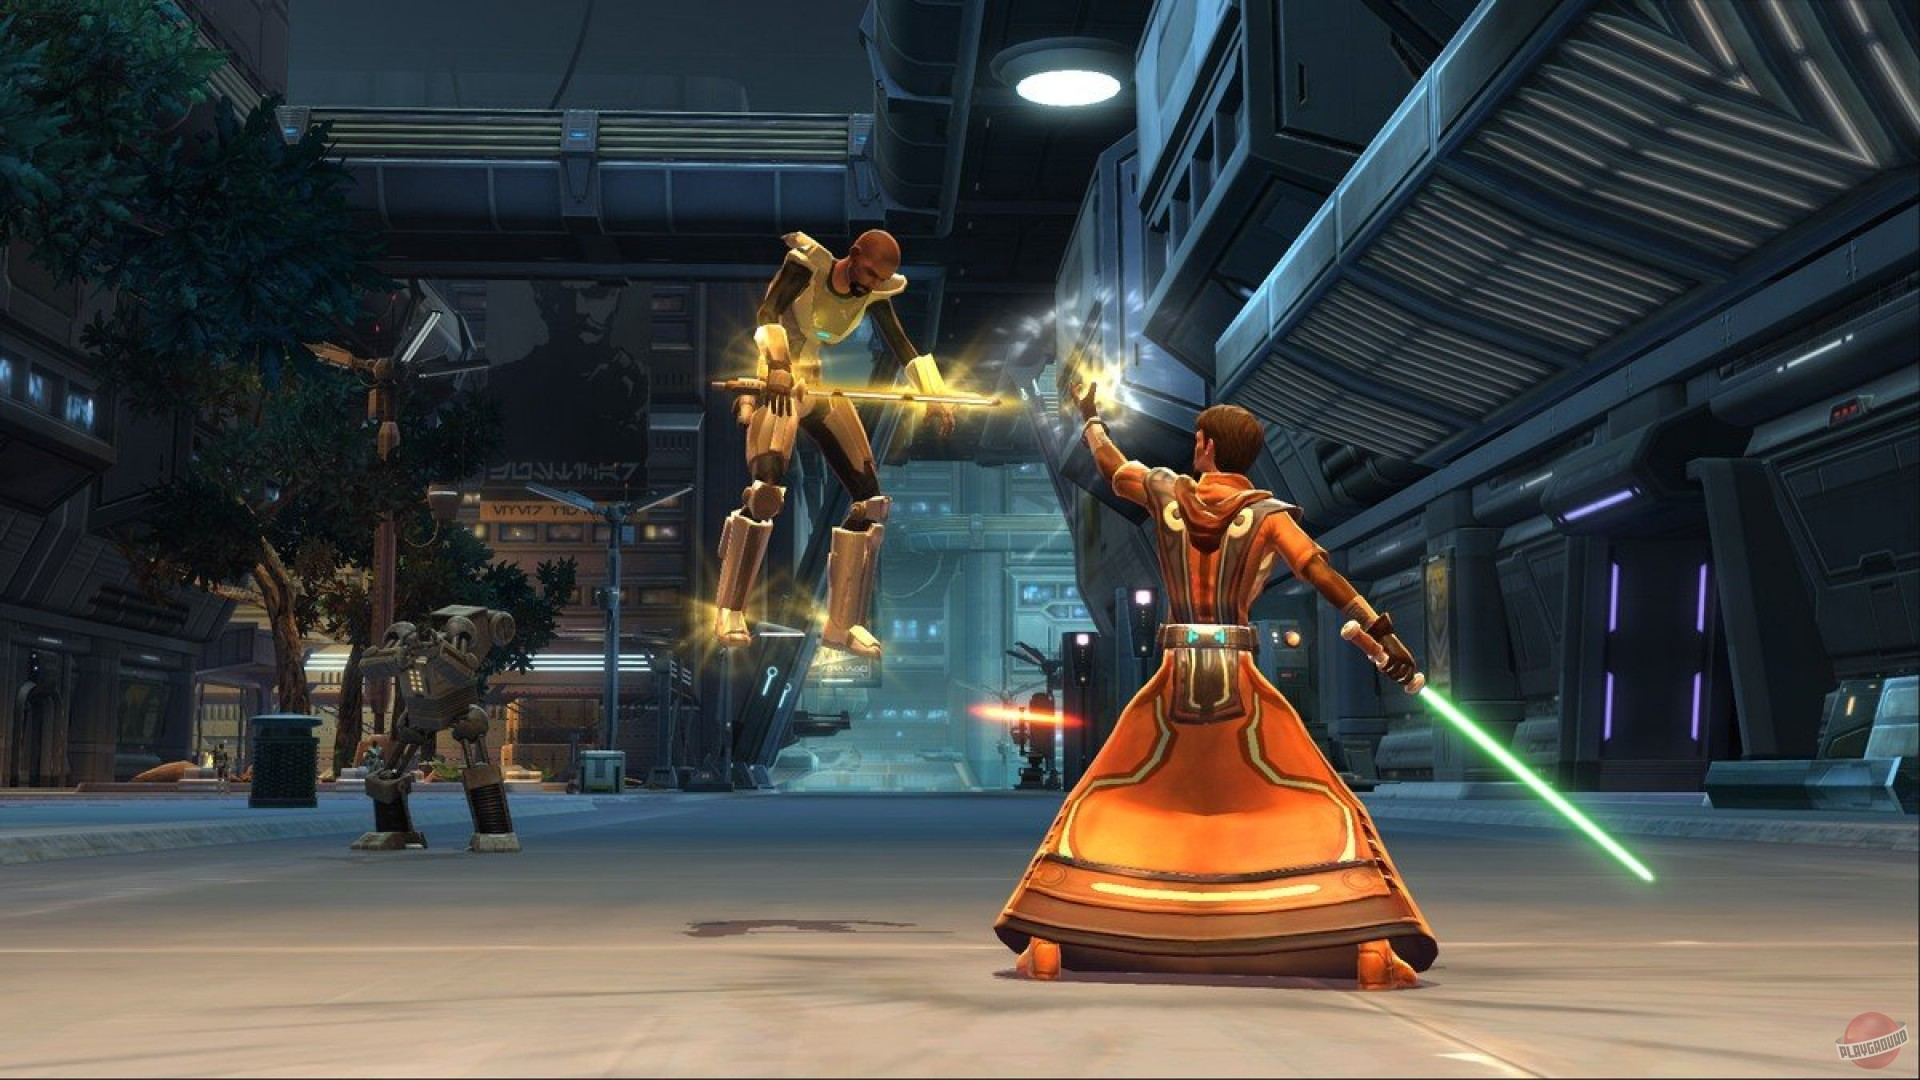 an analysis of the star wars the old republic mass multiplayer online role playing game concept Star wars: the old republic takes place roughly 300 years after the knights of the old republic games and thousands of years prior to the six star wars movies most folks are familiar with in this.